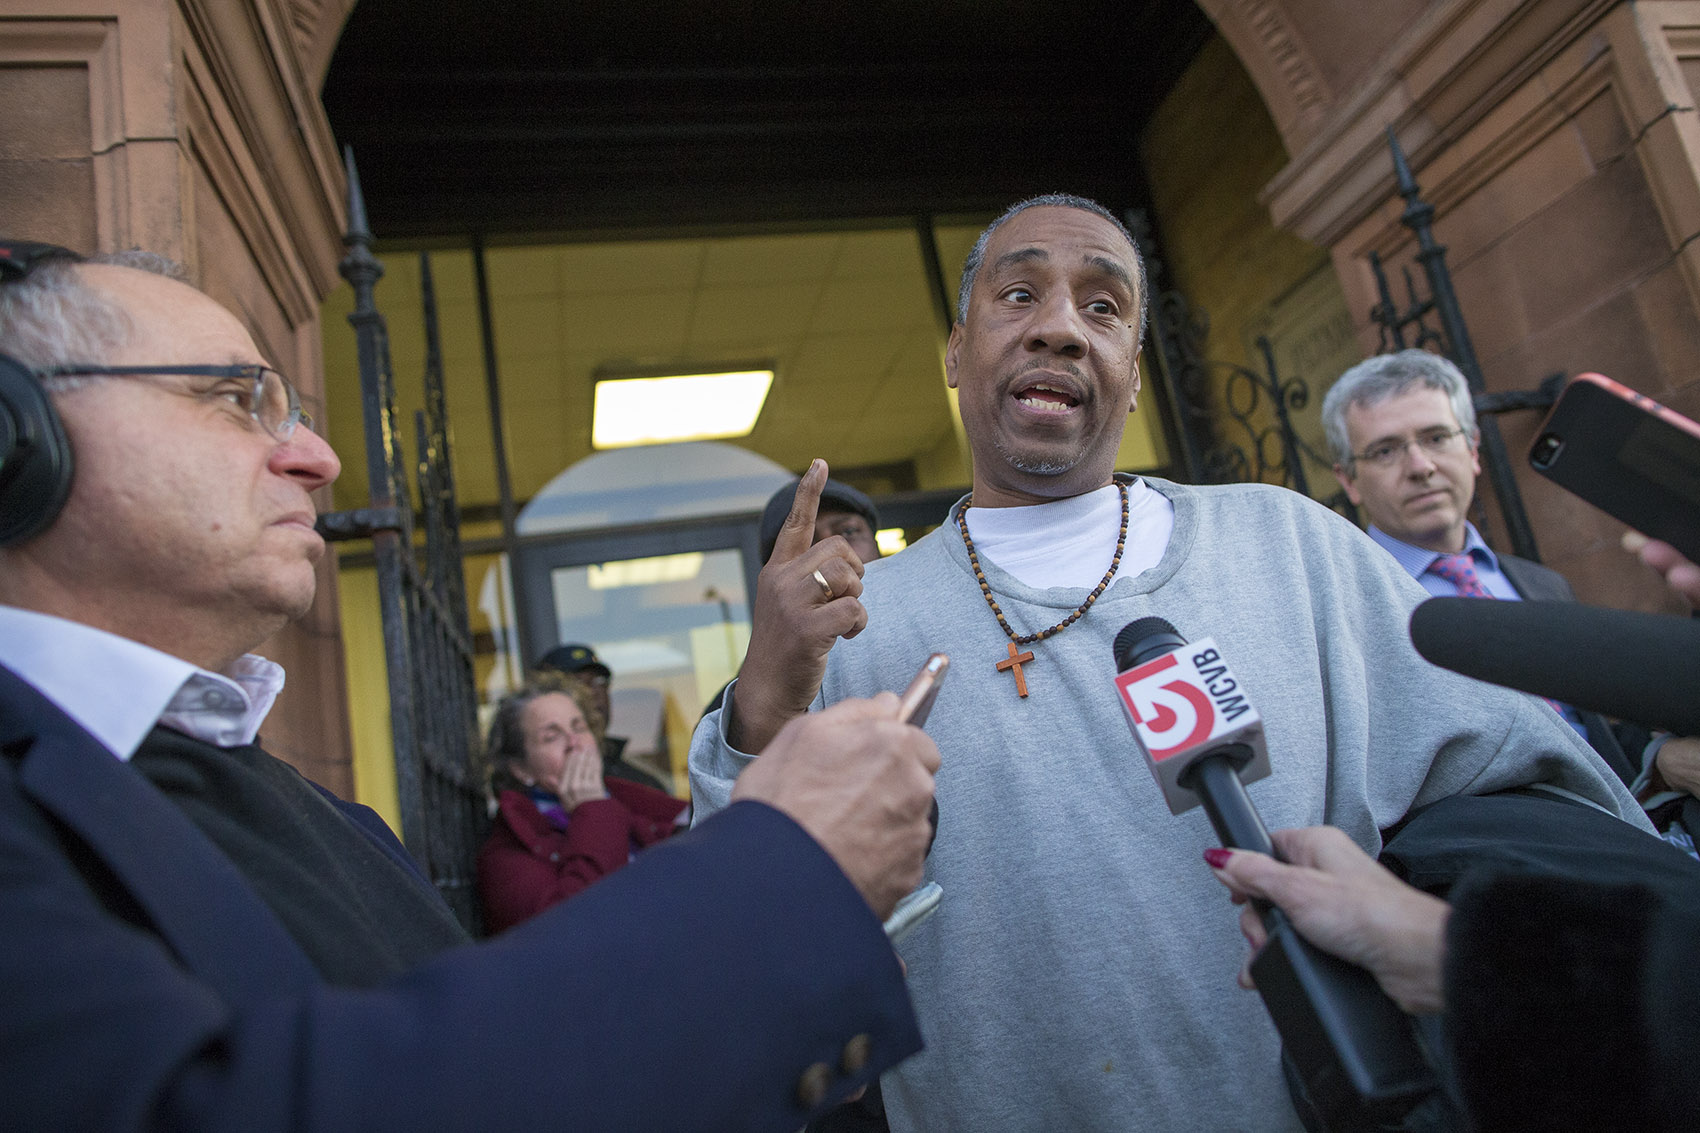 Darrell Jones speaks to the media in front of the Brockton Superior Courthouse after his release. (Jesse Costa/WBUR)